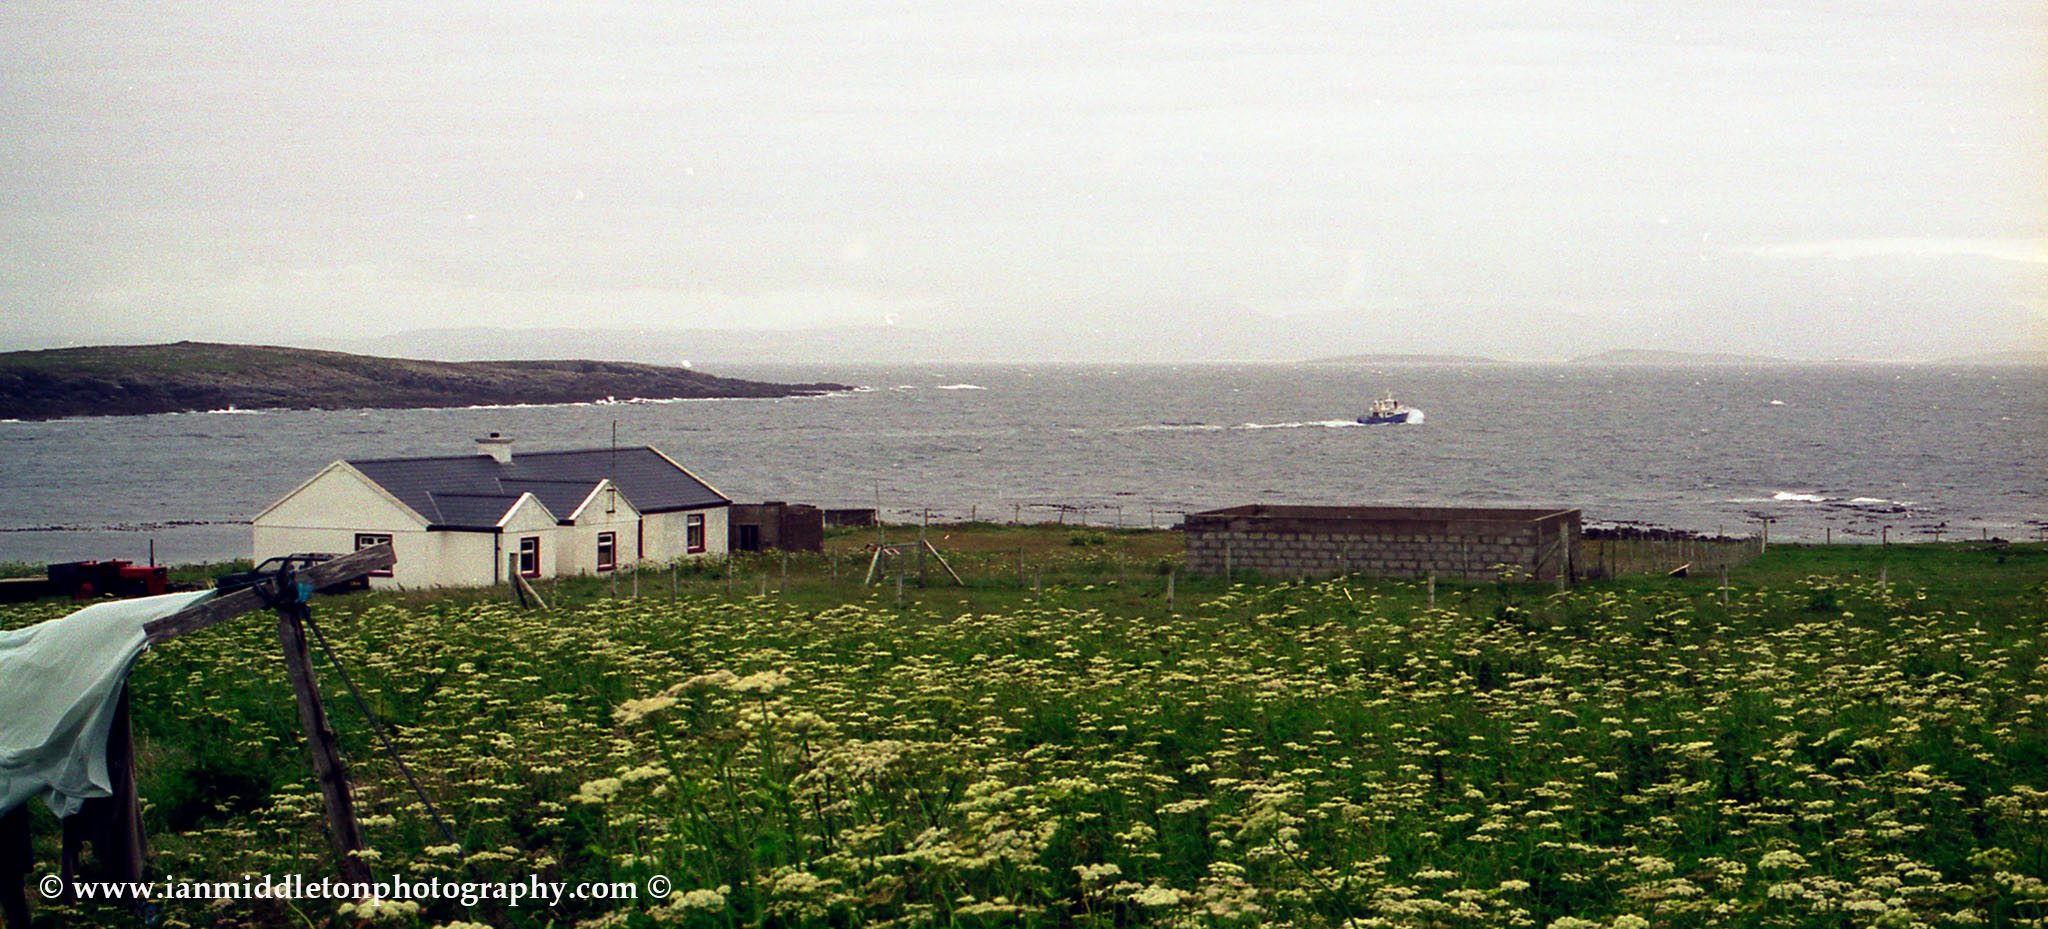 Tory Island ferry leaving, County Donegal, Ireland